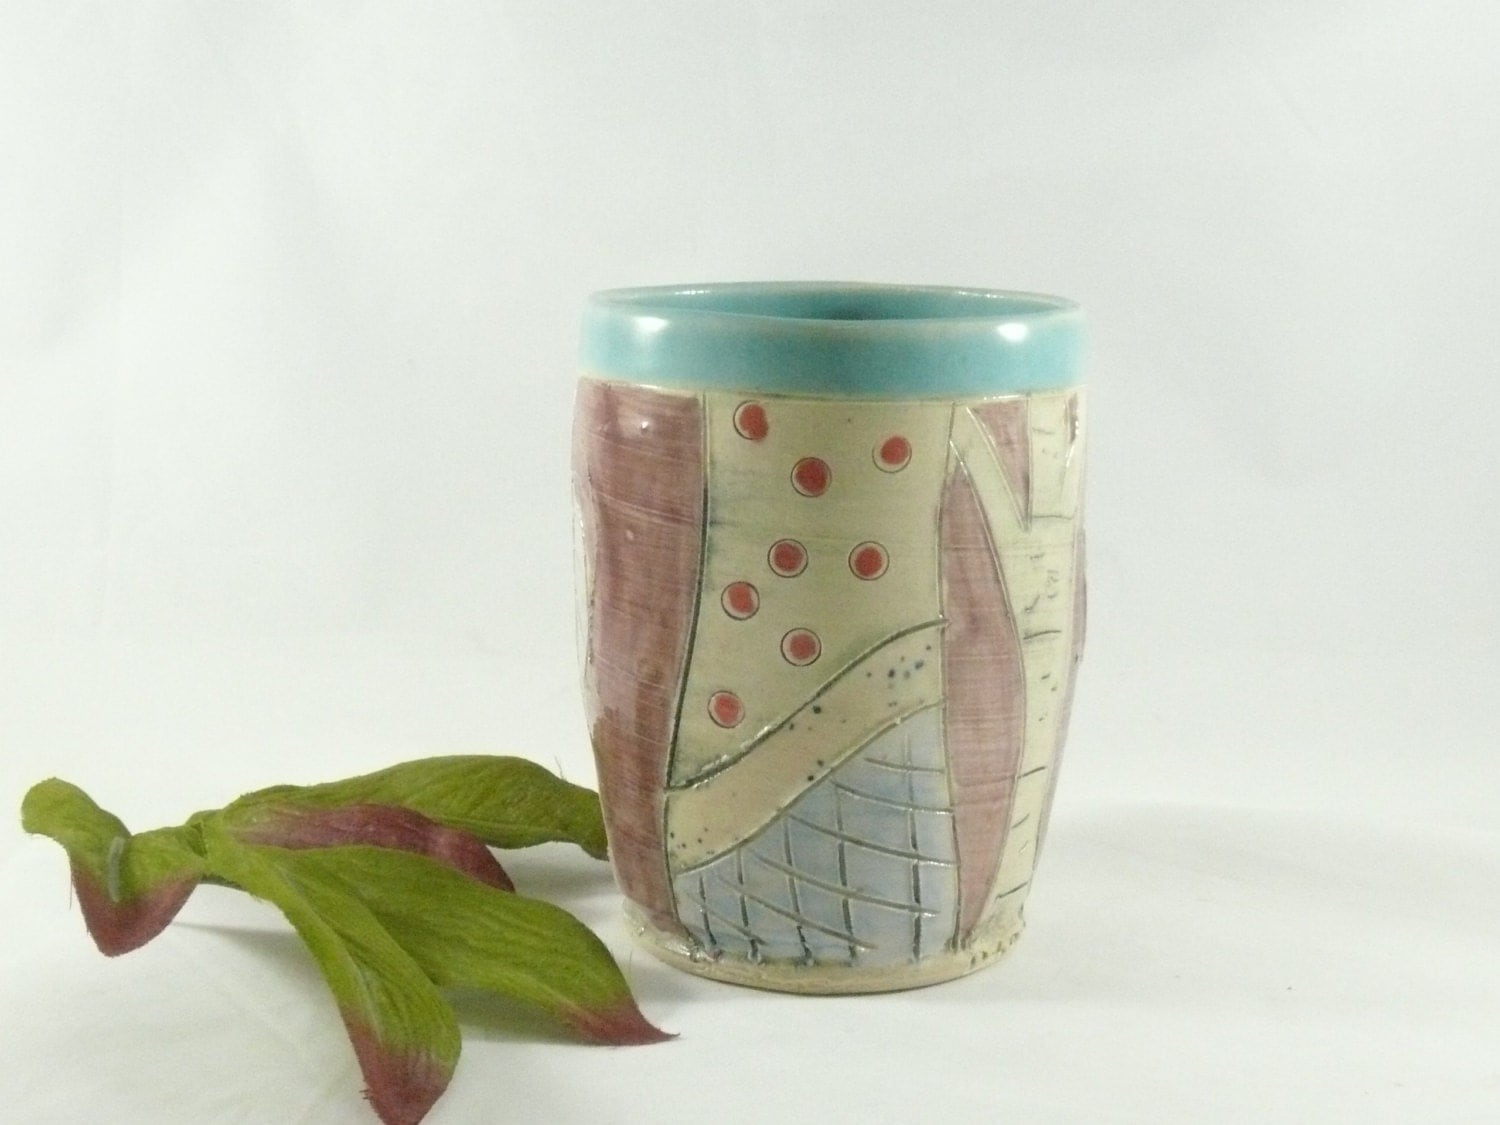 Toothbrush Holder Desk Accessory Pencil Holder by